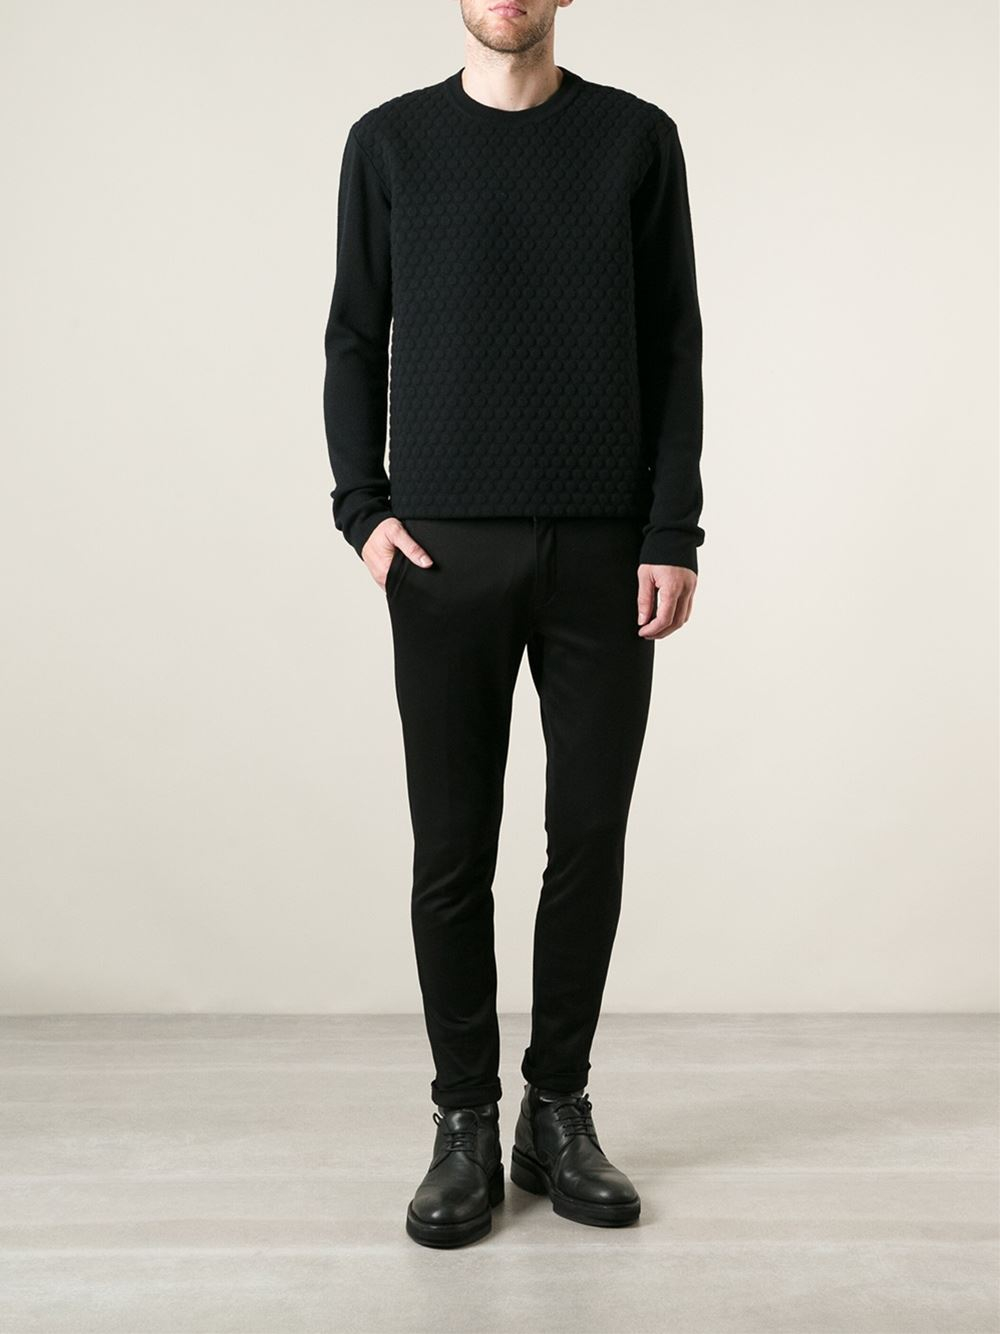 lyst jil sander bubble textured sweatshirt in black for men. Black Bedroom Furniture Sets. Home Design Ideas